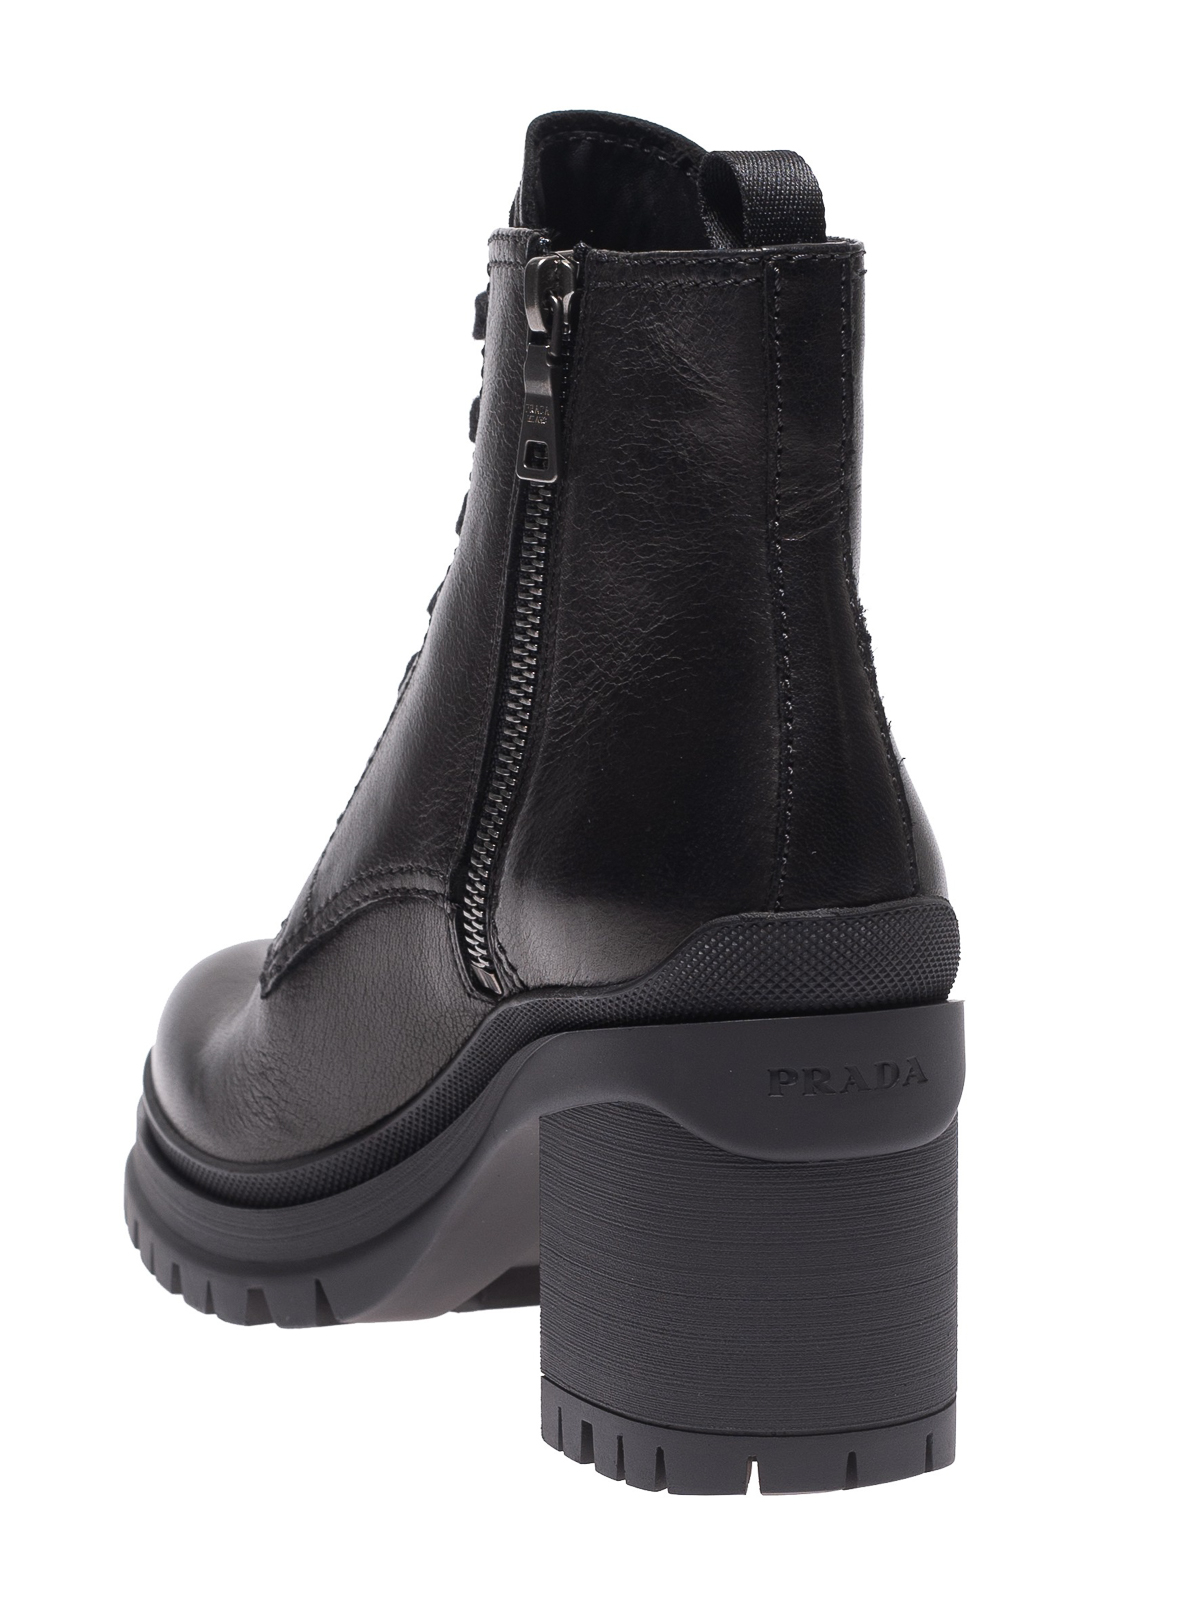 Black brushed lace up combat boots